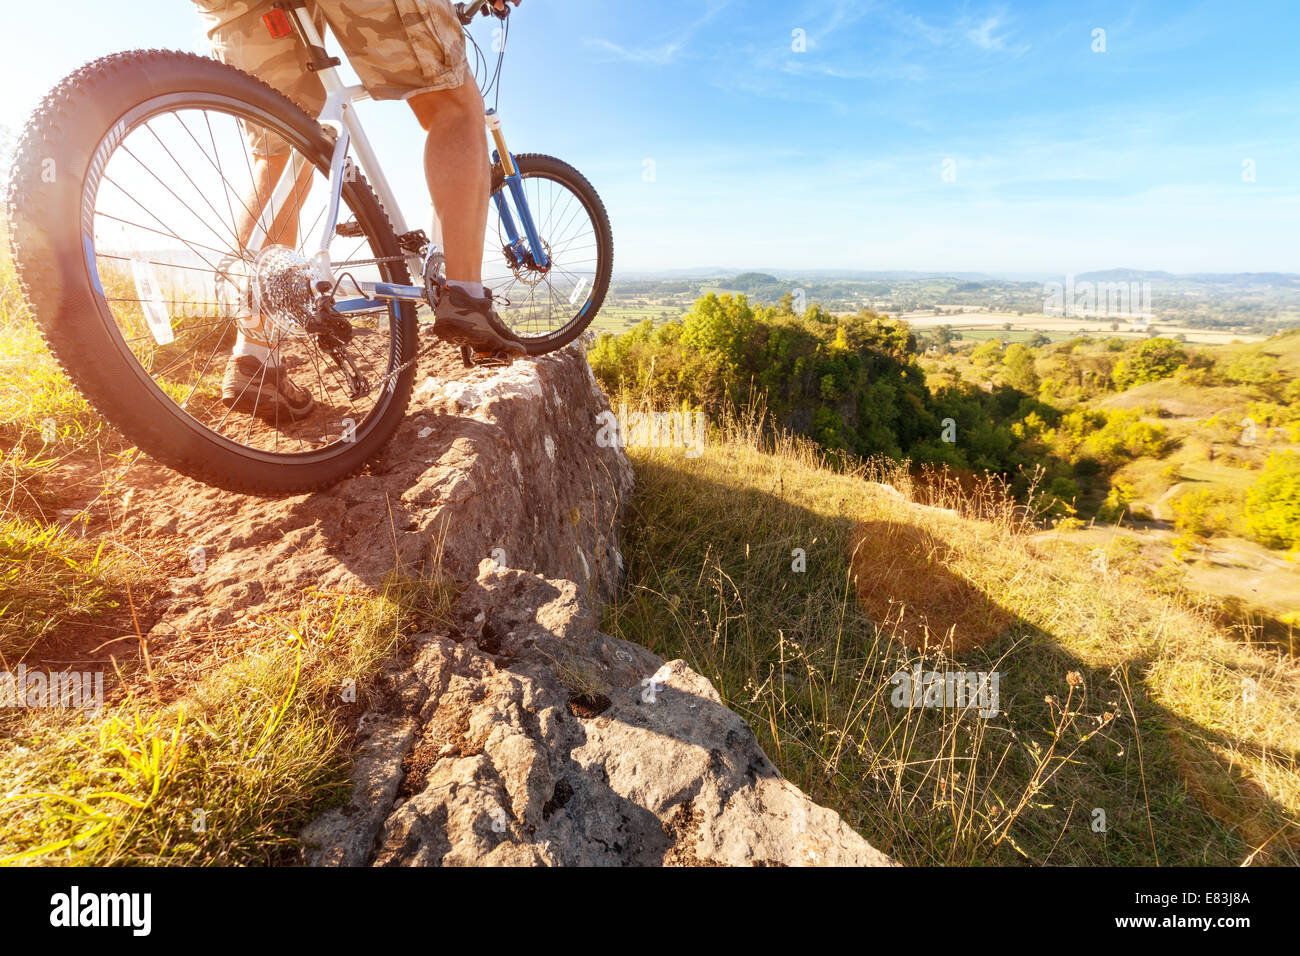 Mountain biker looking at downhill dirt track - Stock Image